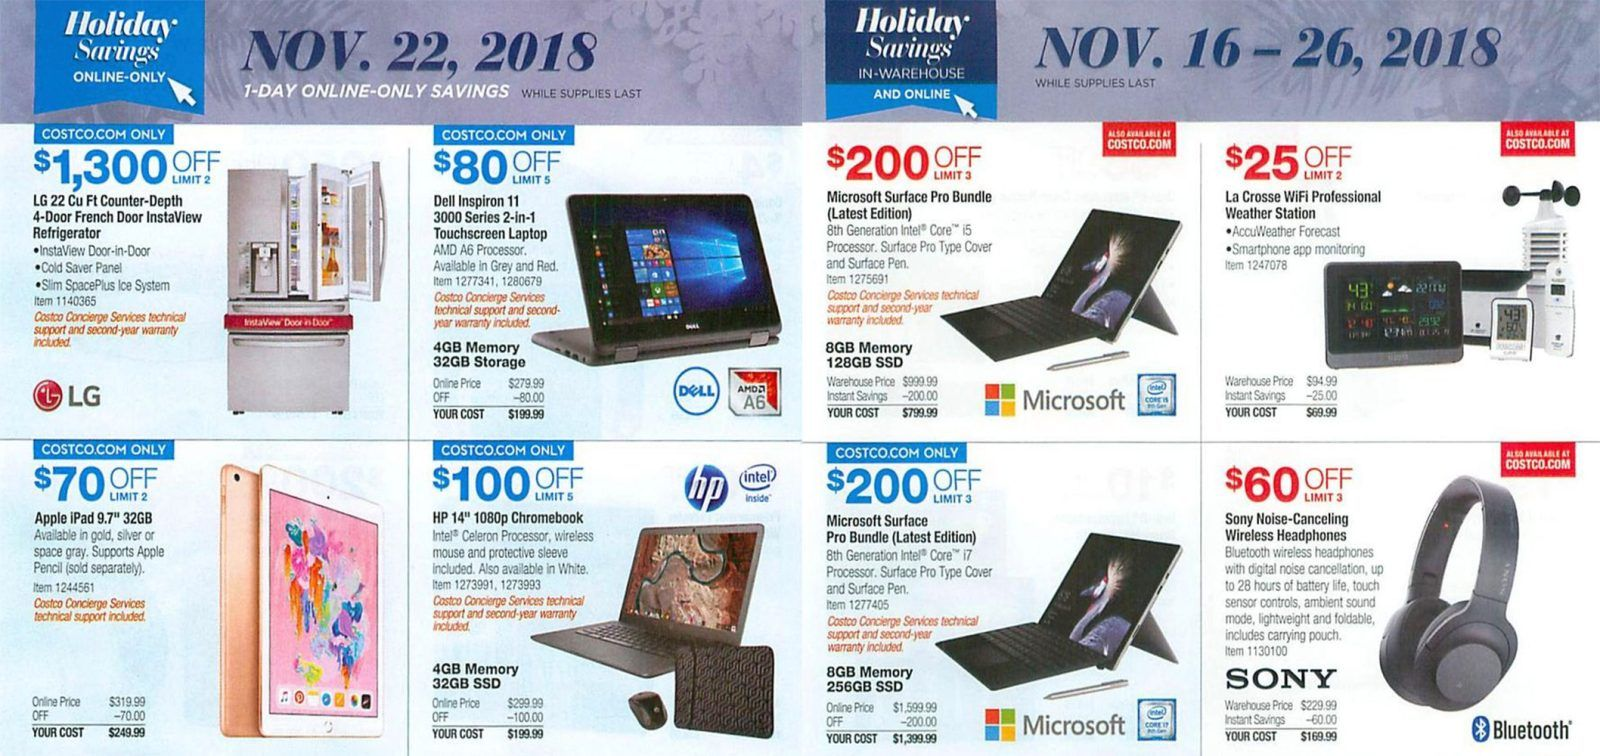 Costco Black Friday 2018 Ad Scan, Deals and Offers - Best Black ...